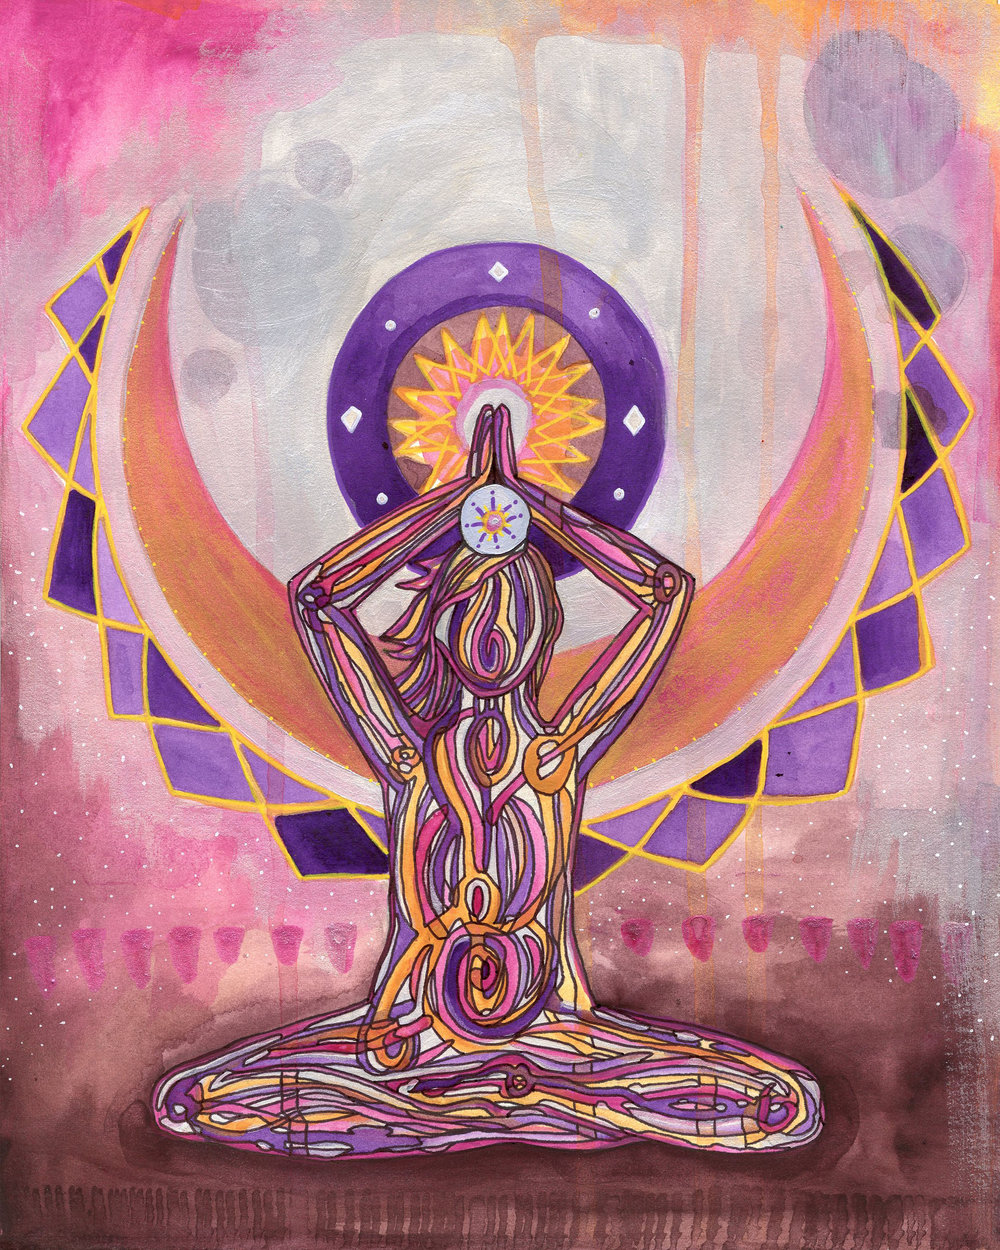 The Creative Chakra Salon - A 7 WEEK PAINTING JOURNEY THROUGH THE CHAKRASDo you crave a creative painting practice that feels free, juicy, fun + magical?